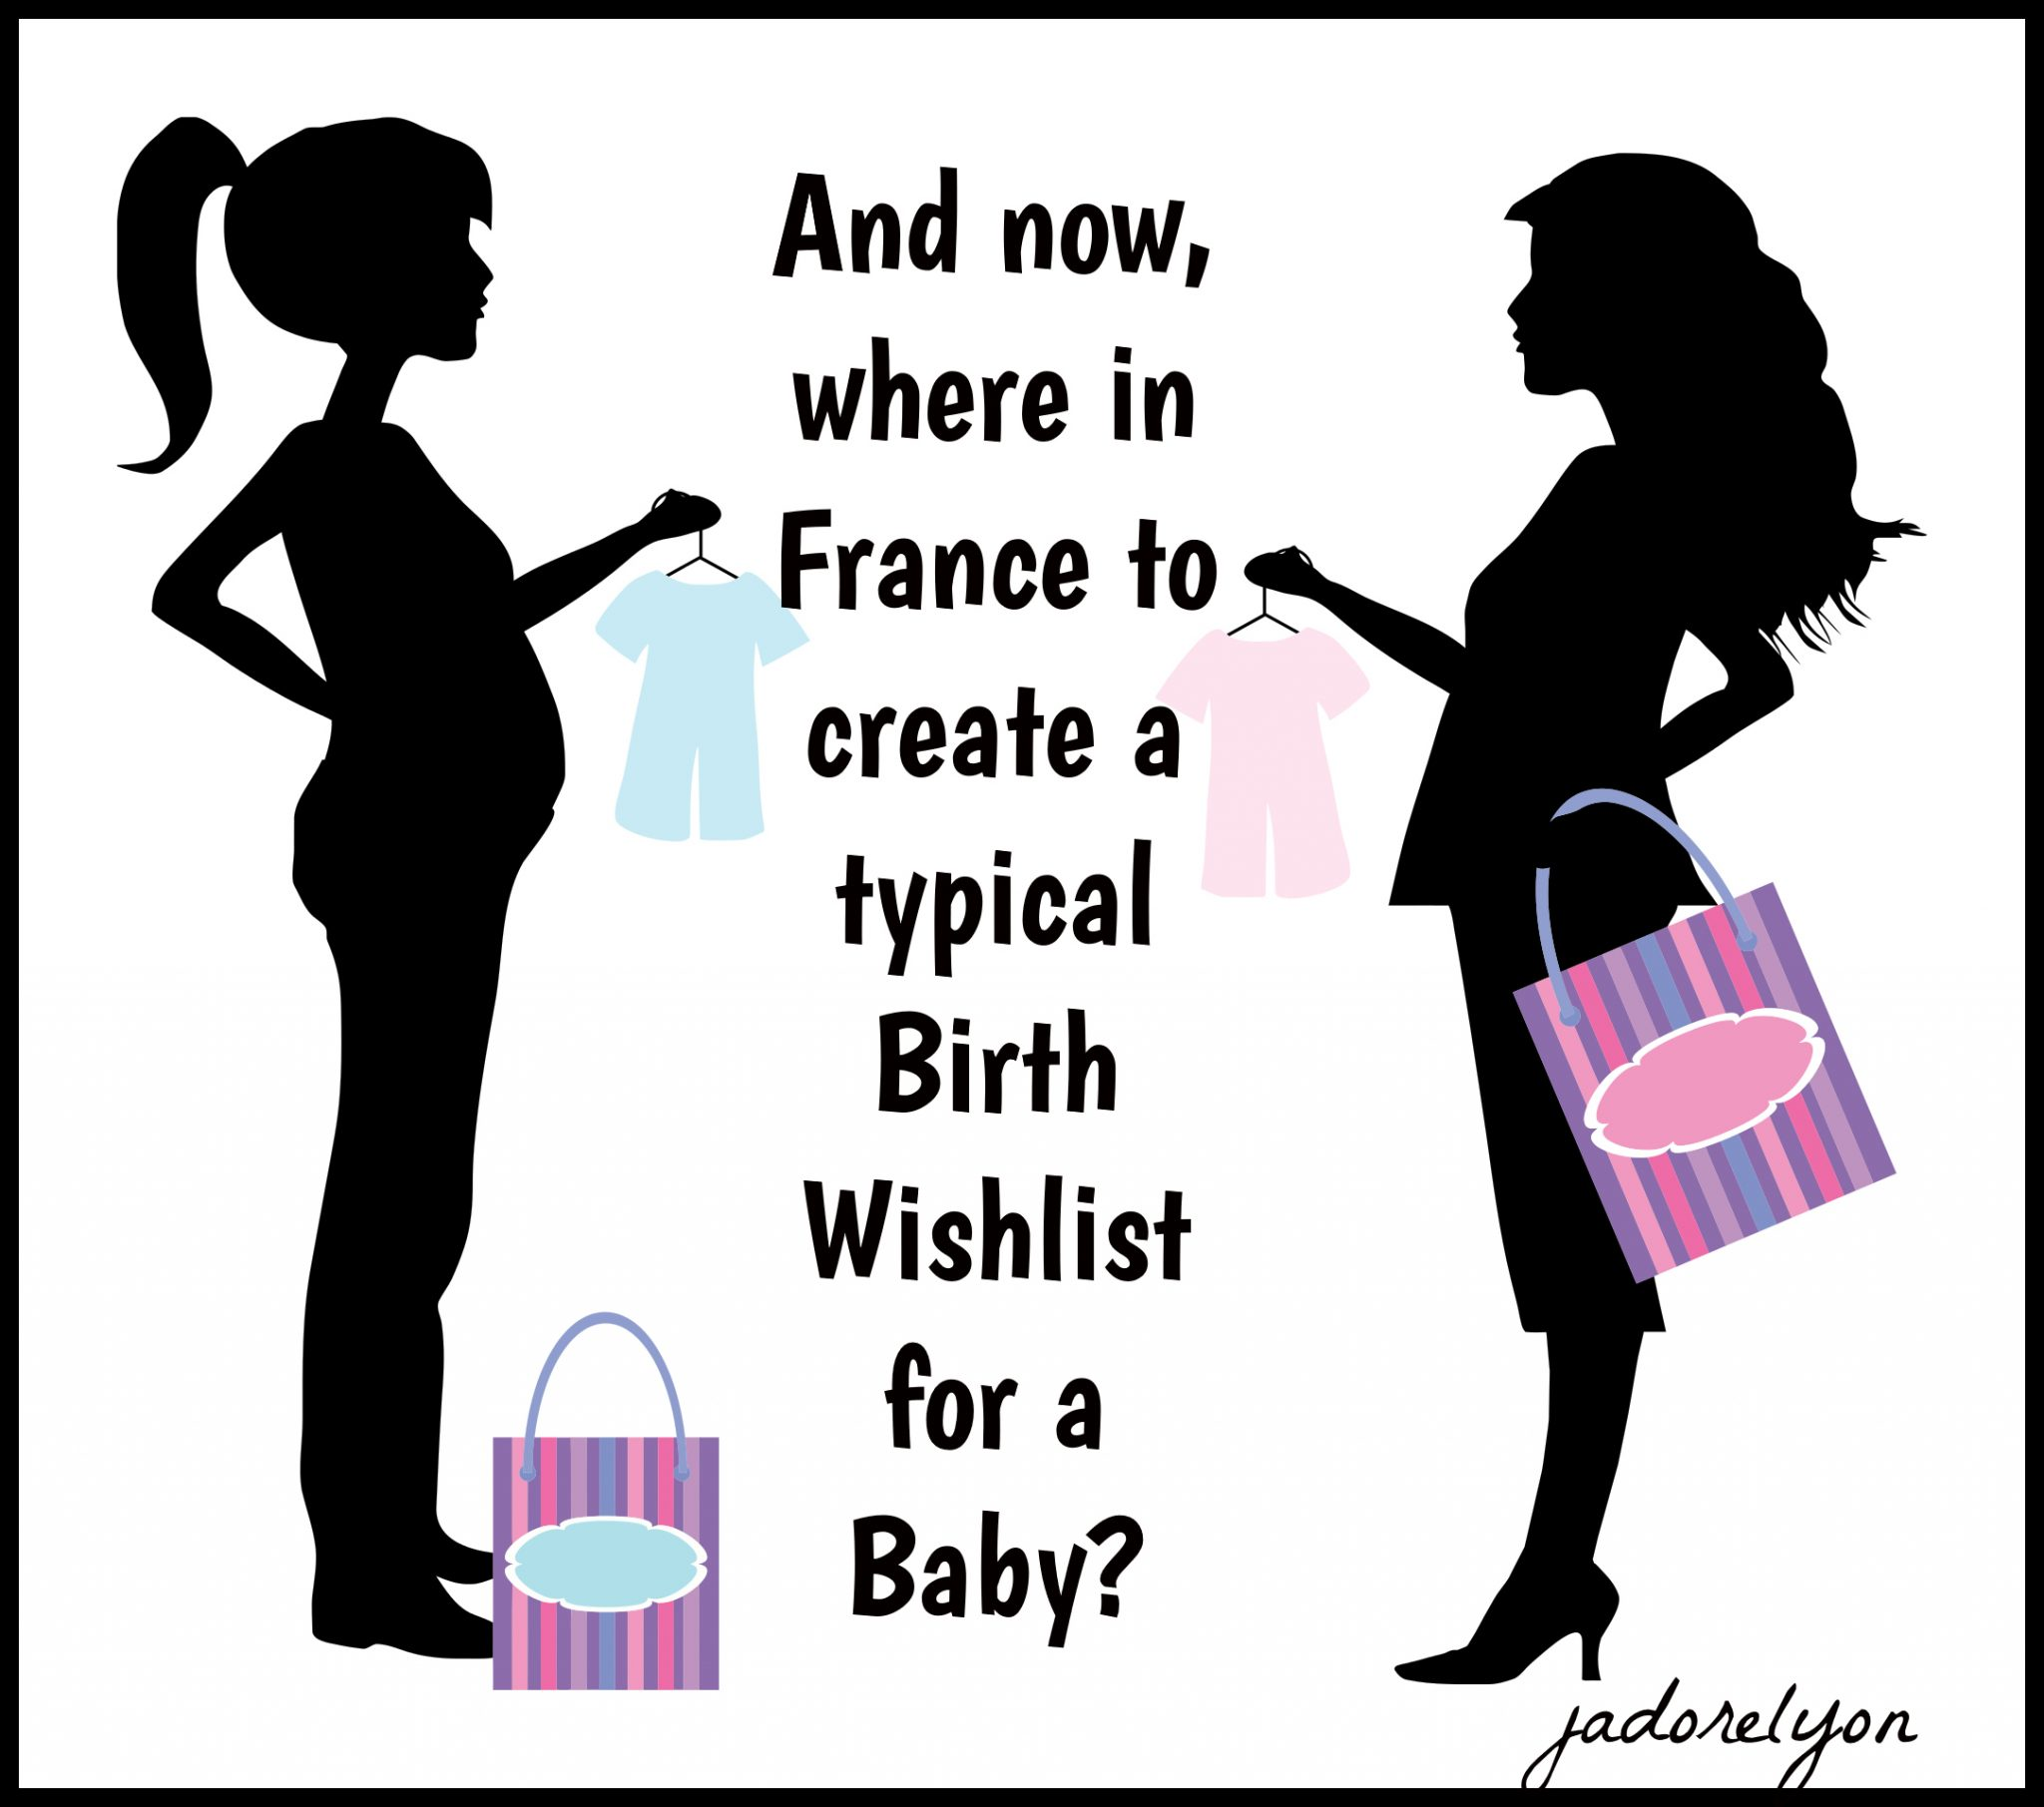 And now, where in France to create a typical Birth Wishlist for a Baby_